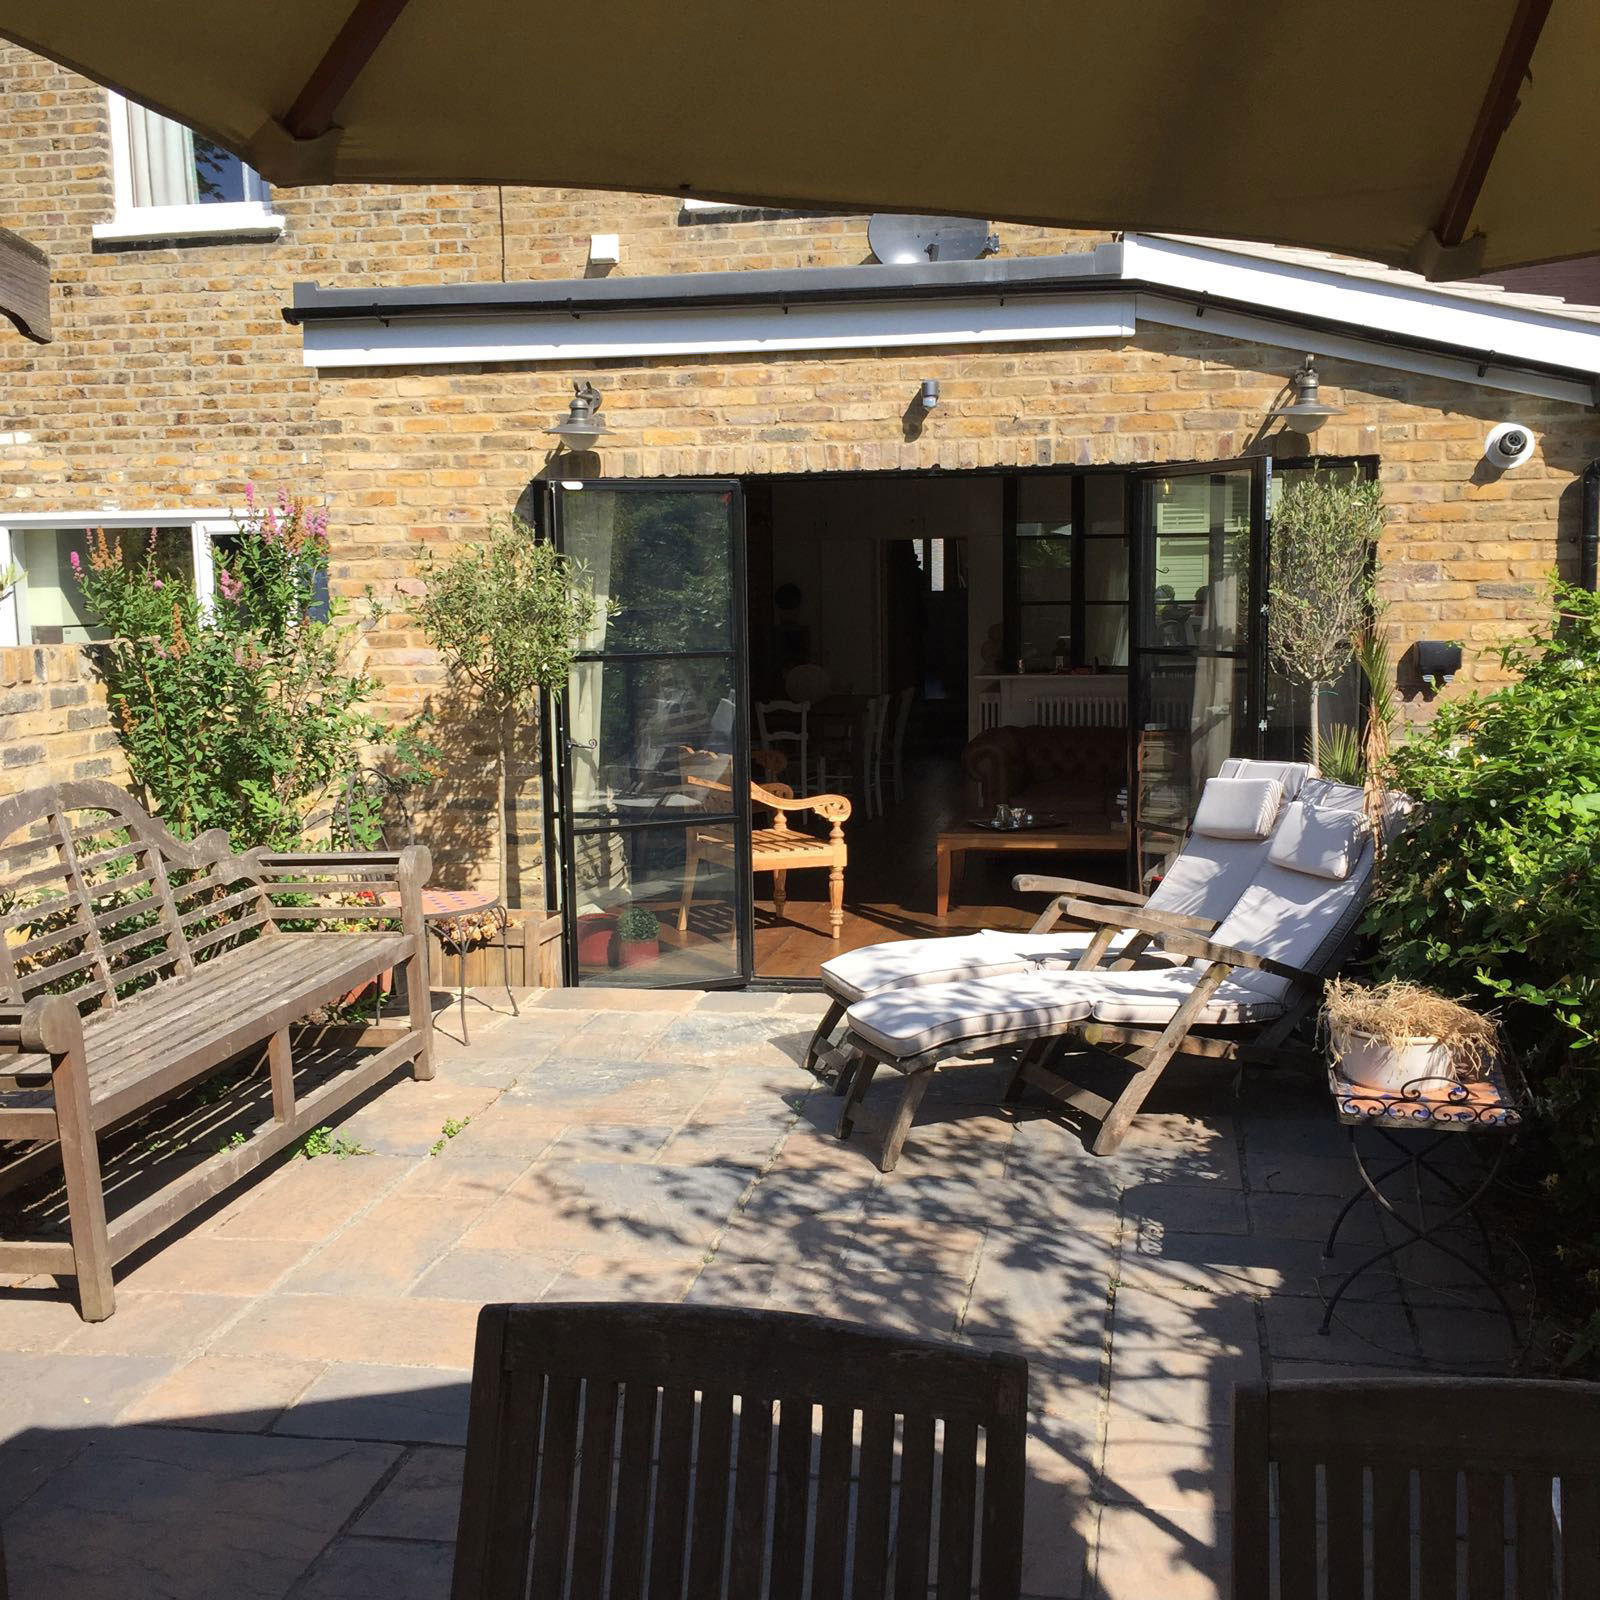 west-ealing-refurbishment-and-extension